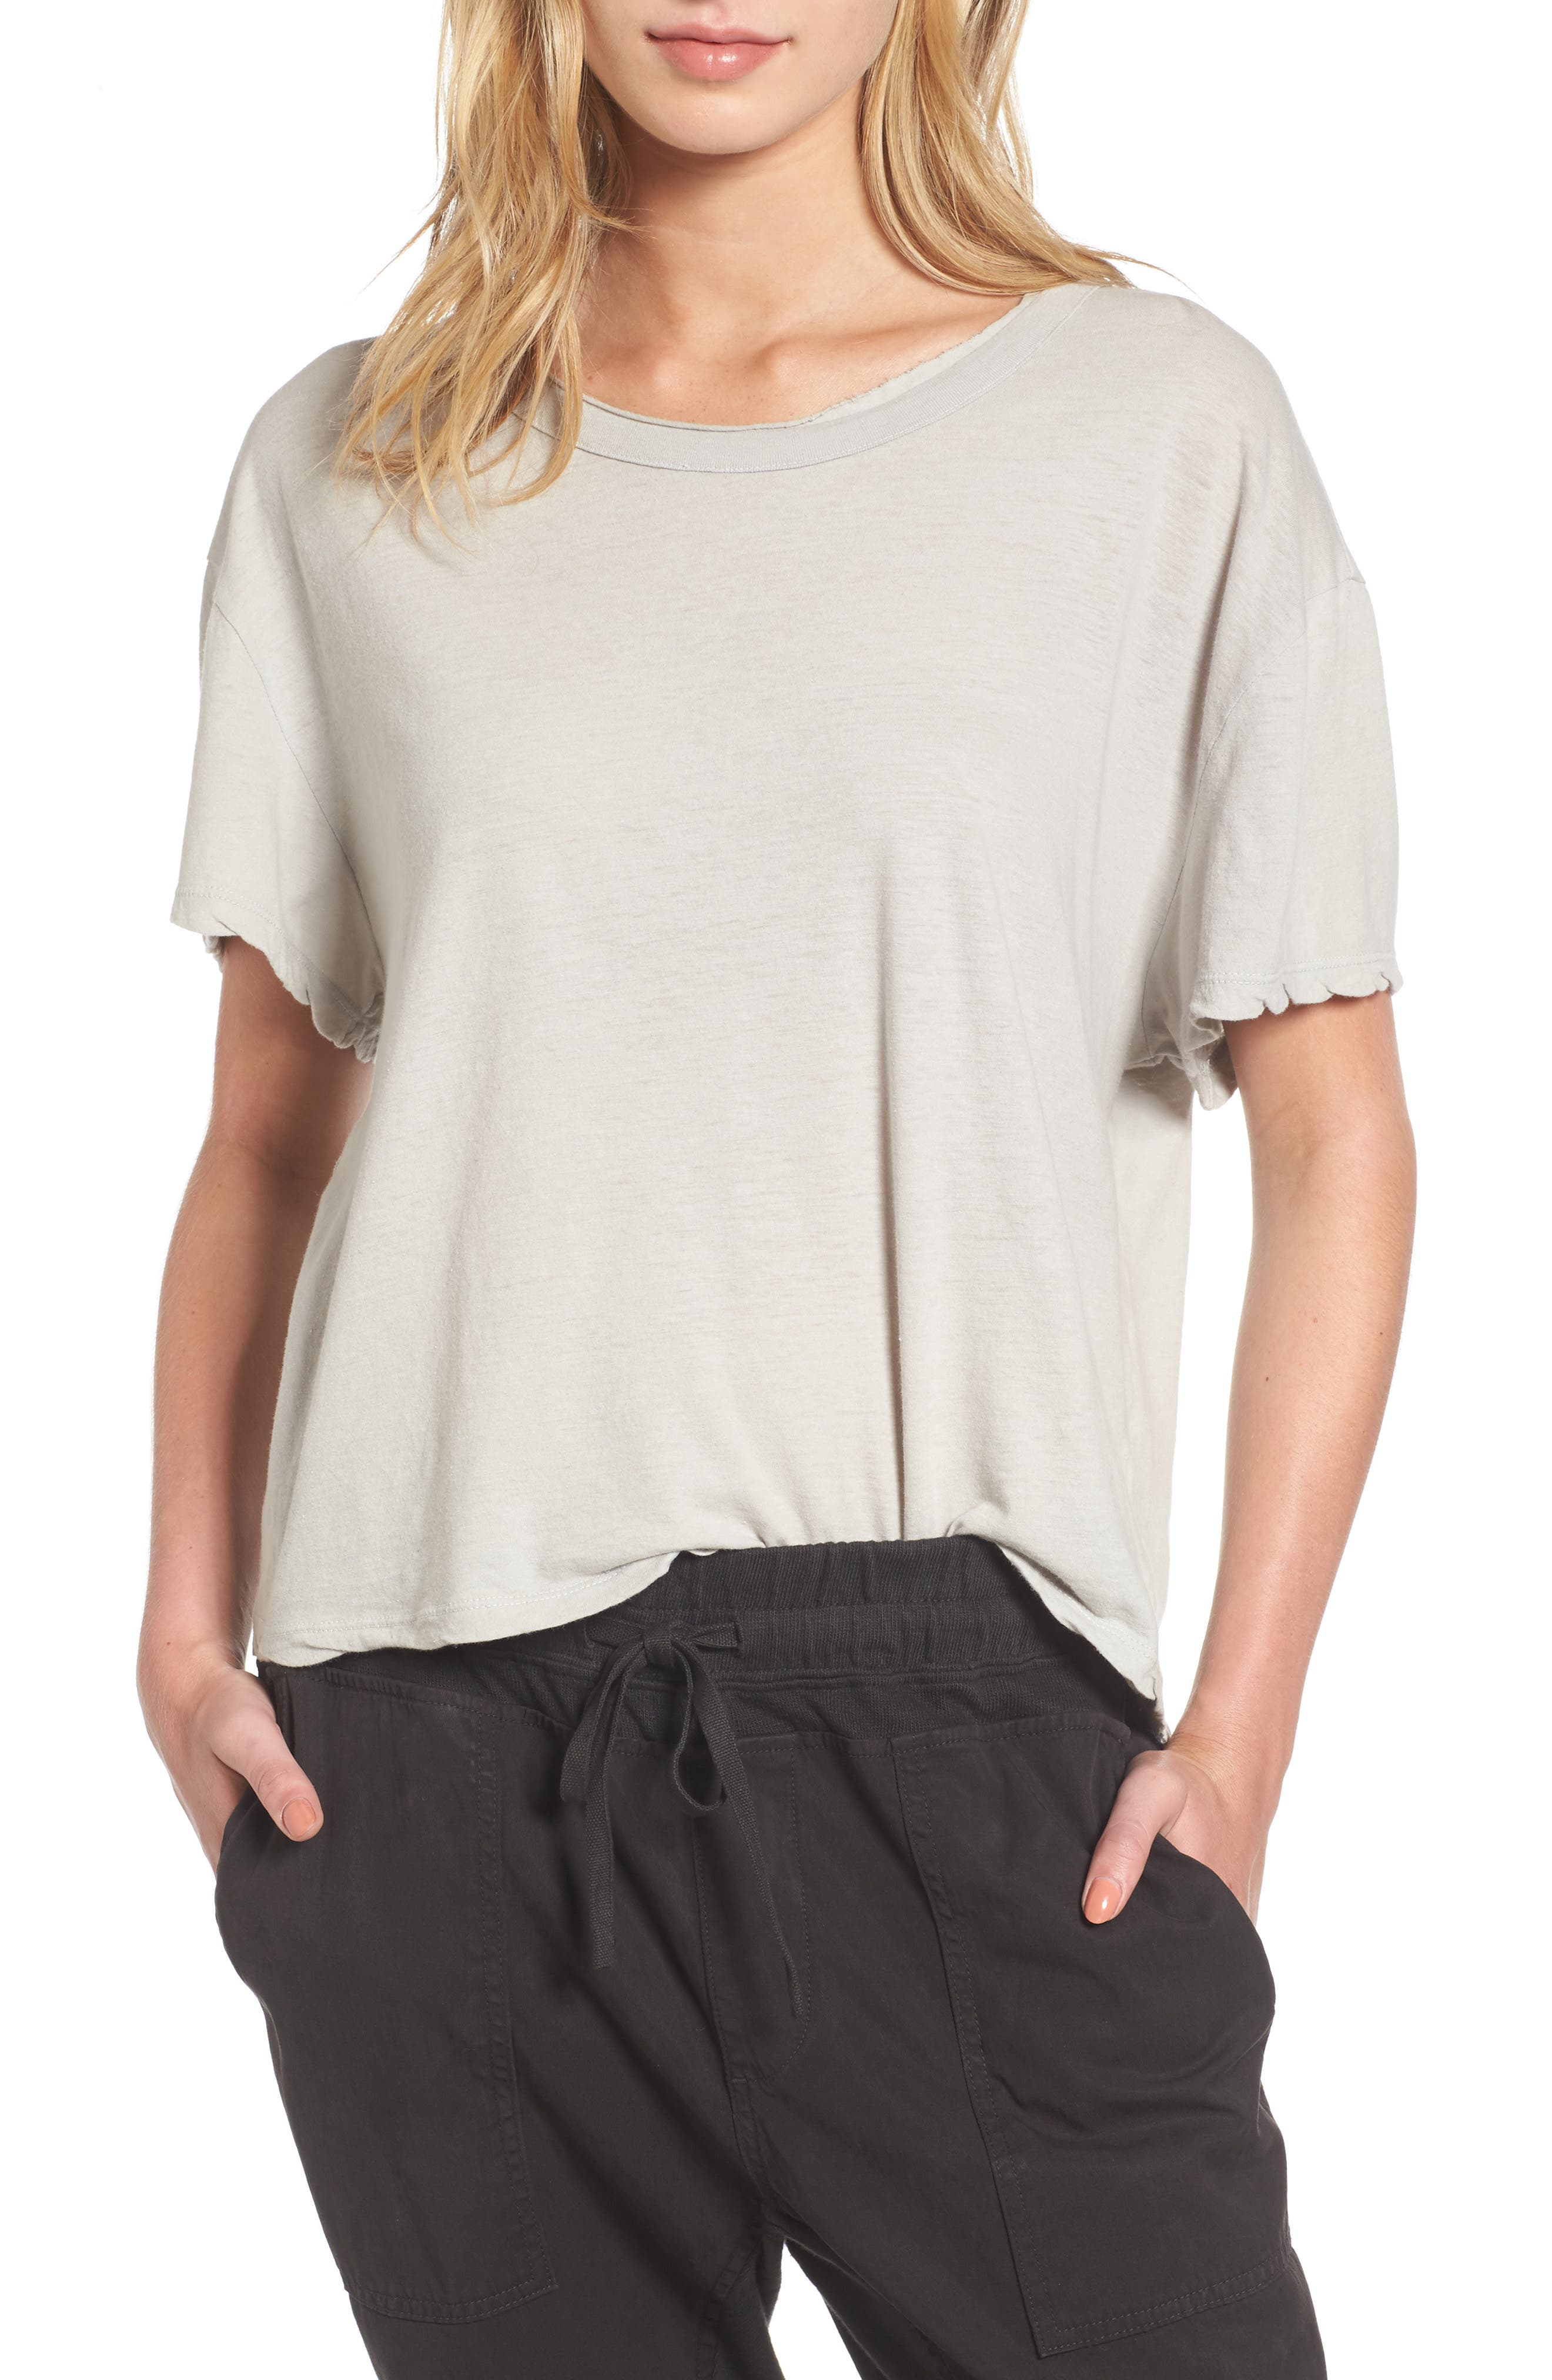 James Perse Crop Boxy Tee